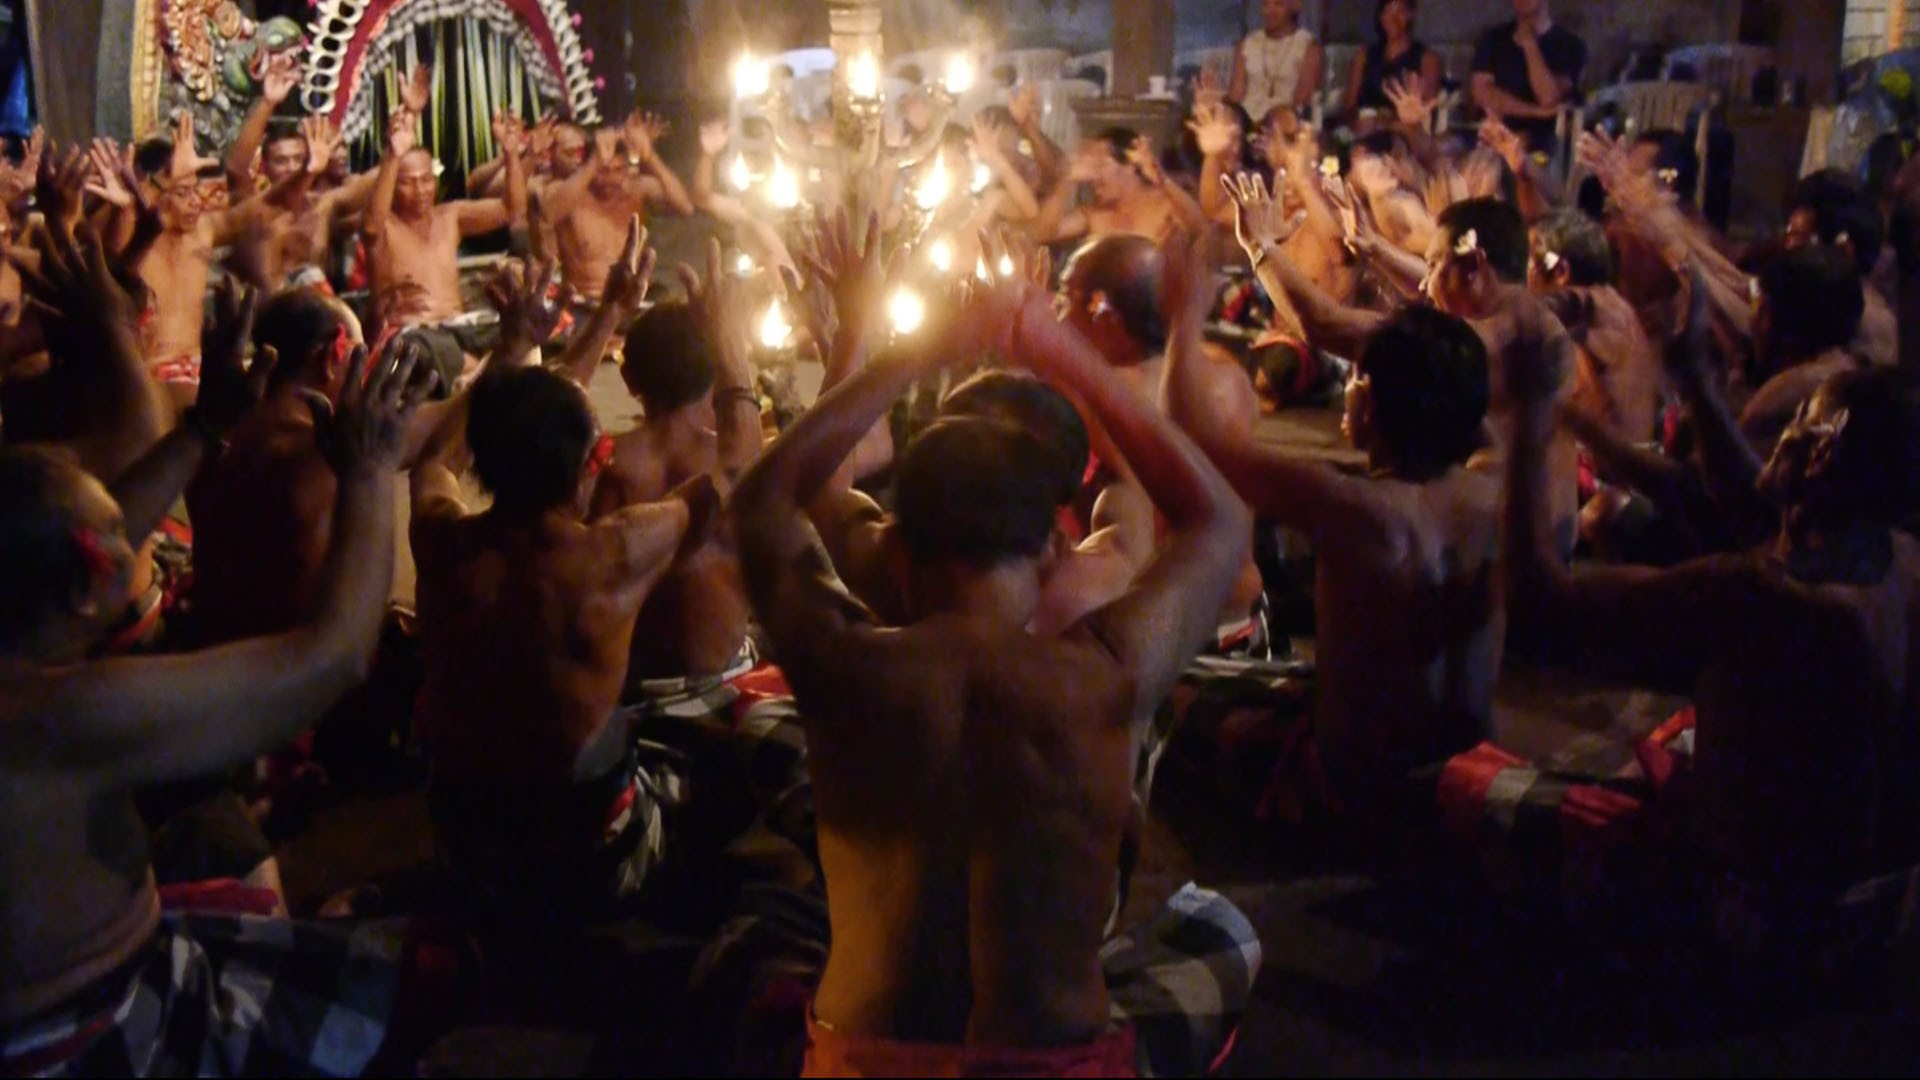 Kecak_Screenshot 2015-01-31 23.07.26